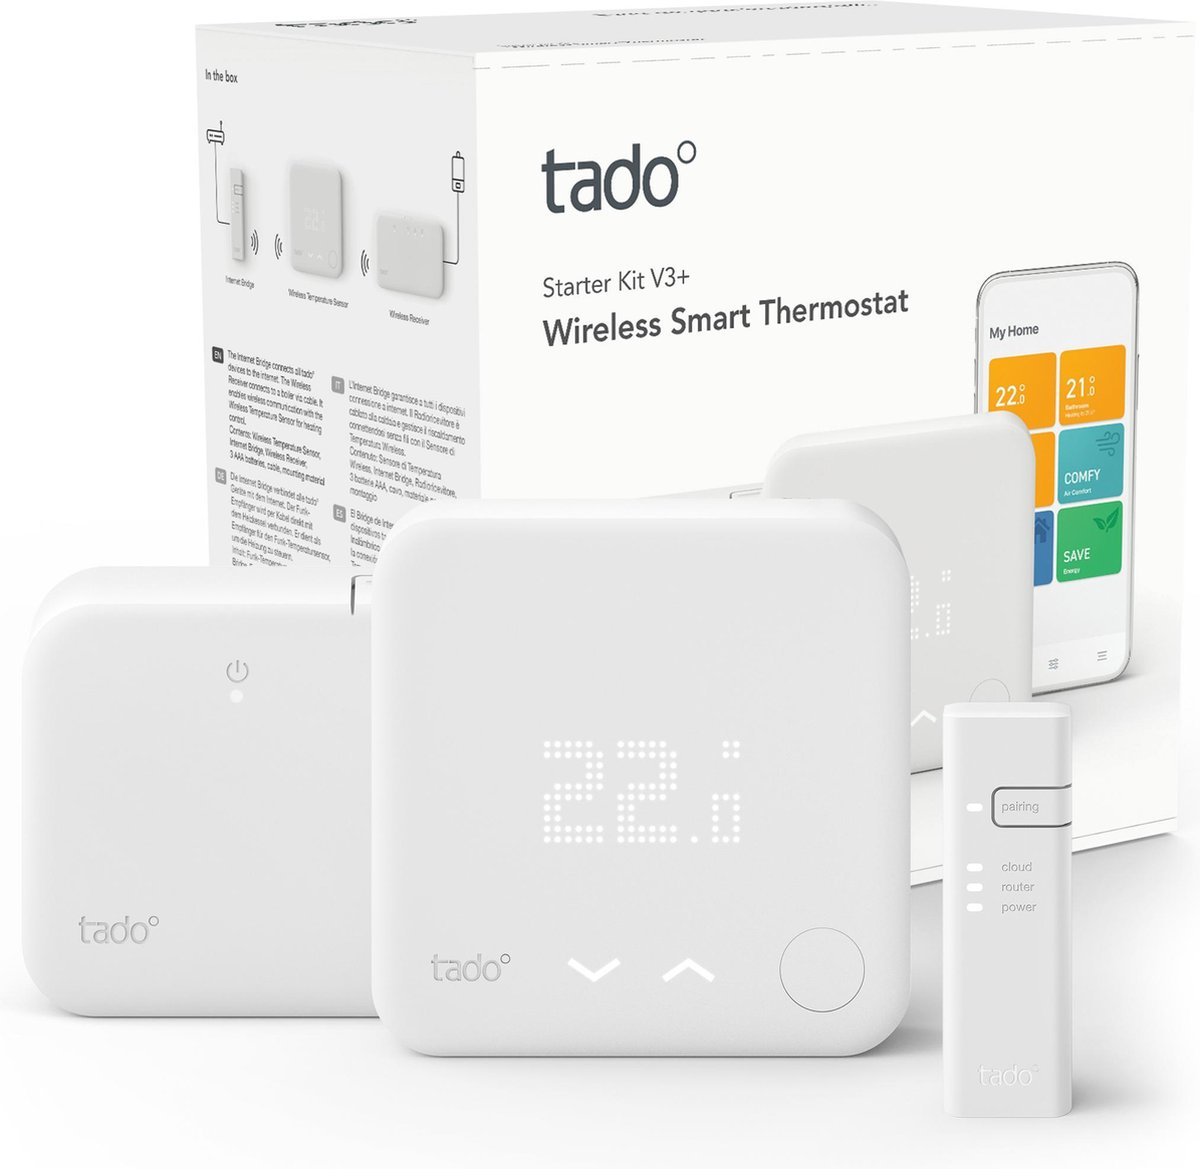 tado slimme thermostaat v3